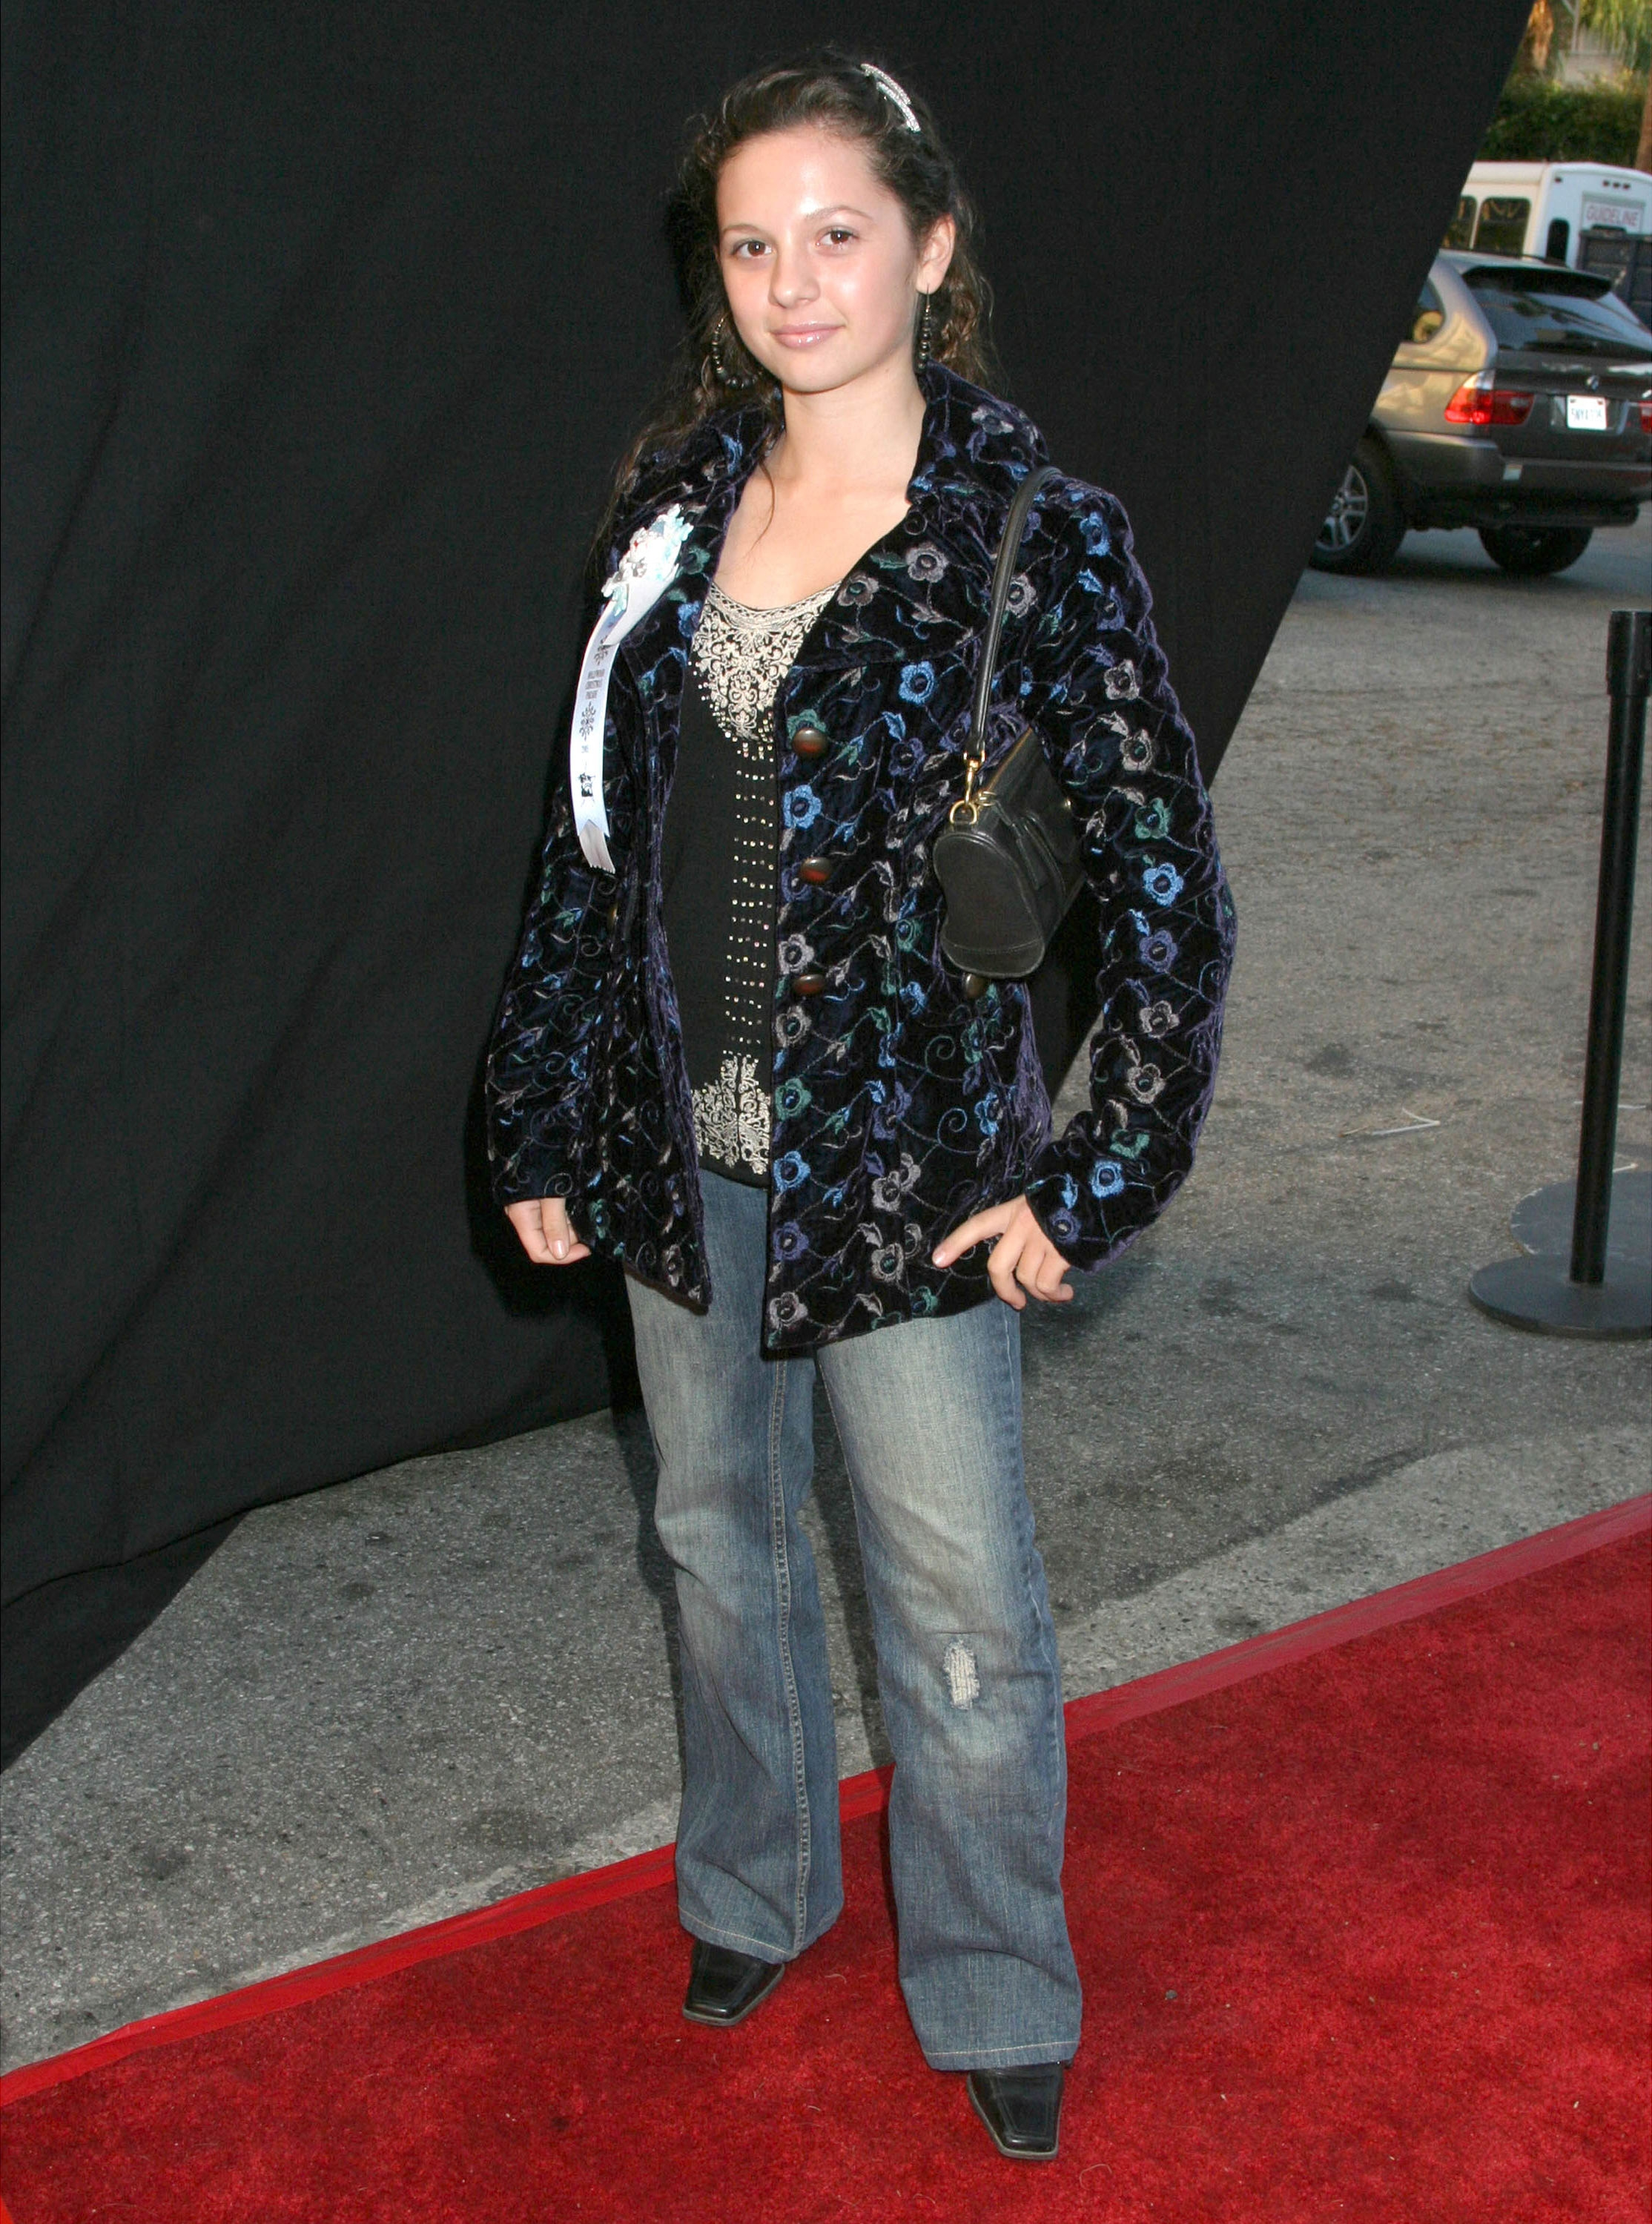 Photos de Mackenzie Rosman - Hollywood Christmas Parade 11.27.2005 - 9